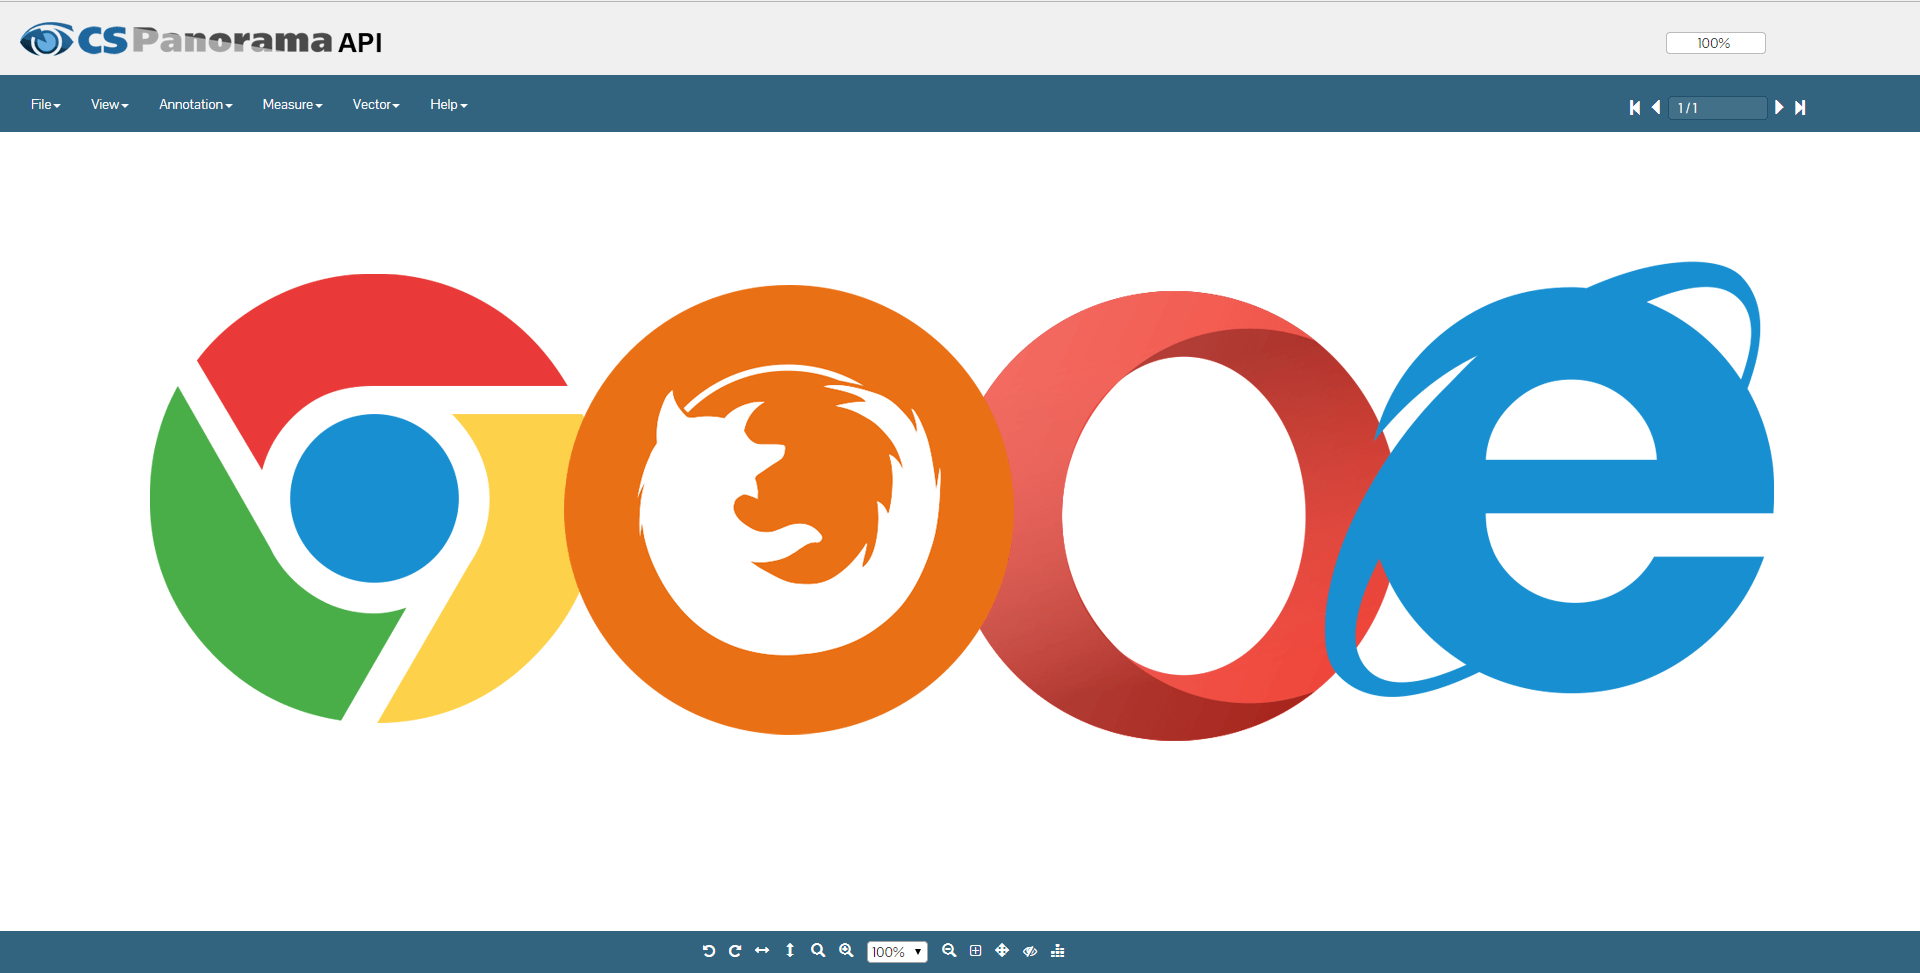 Supports all leading browsers